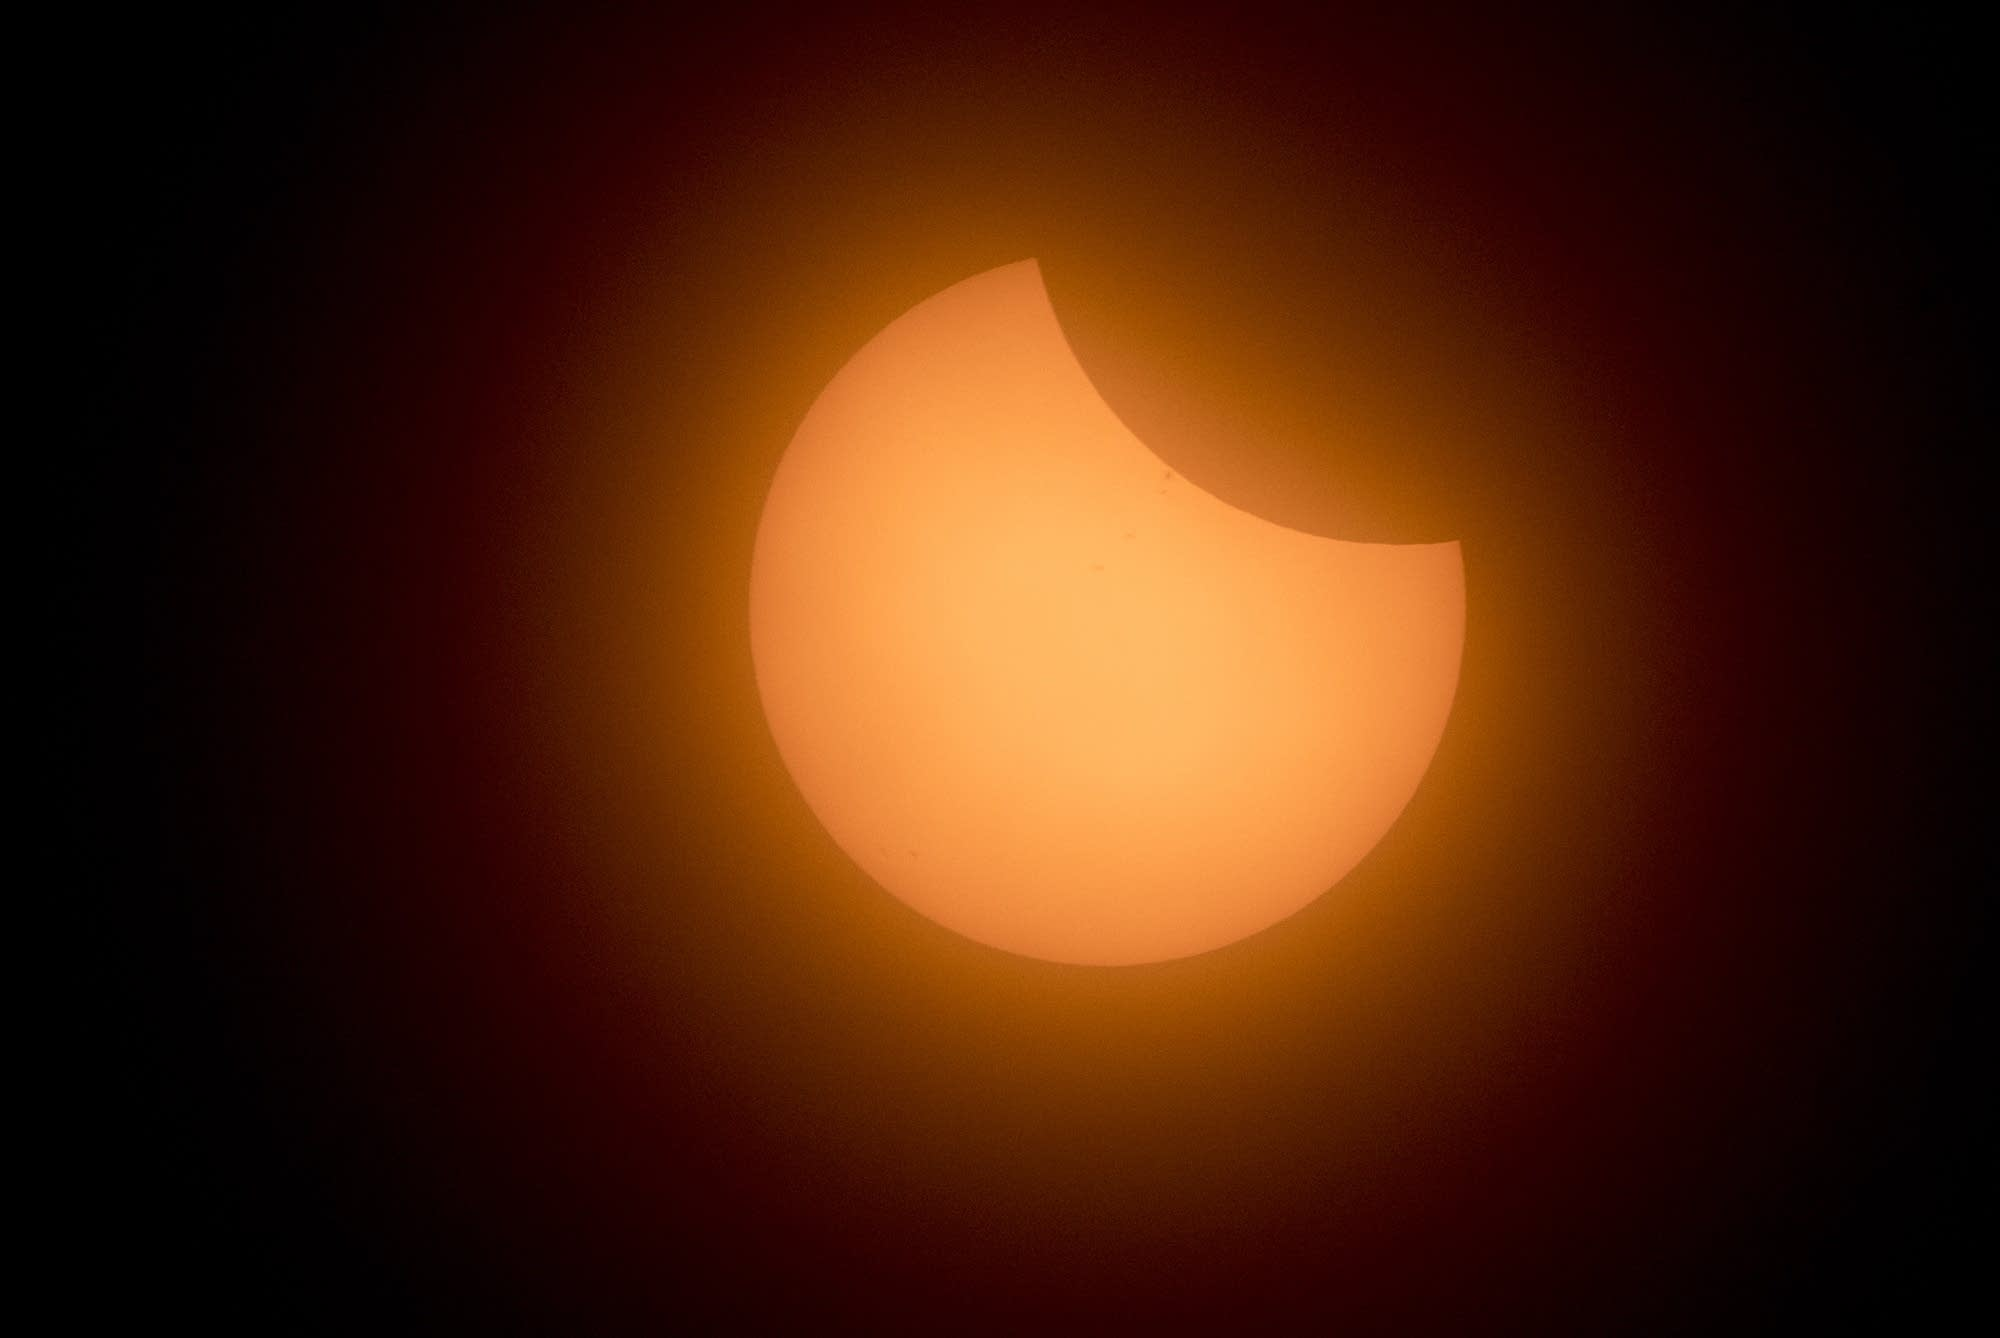 The clouds cleared in time for the beginning of the total solar eclipse.